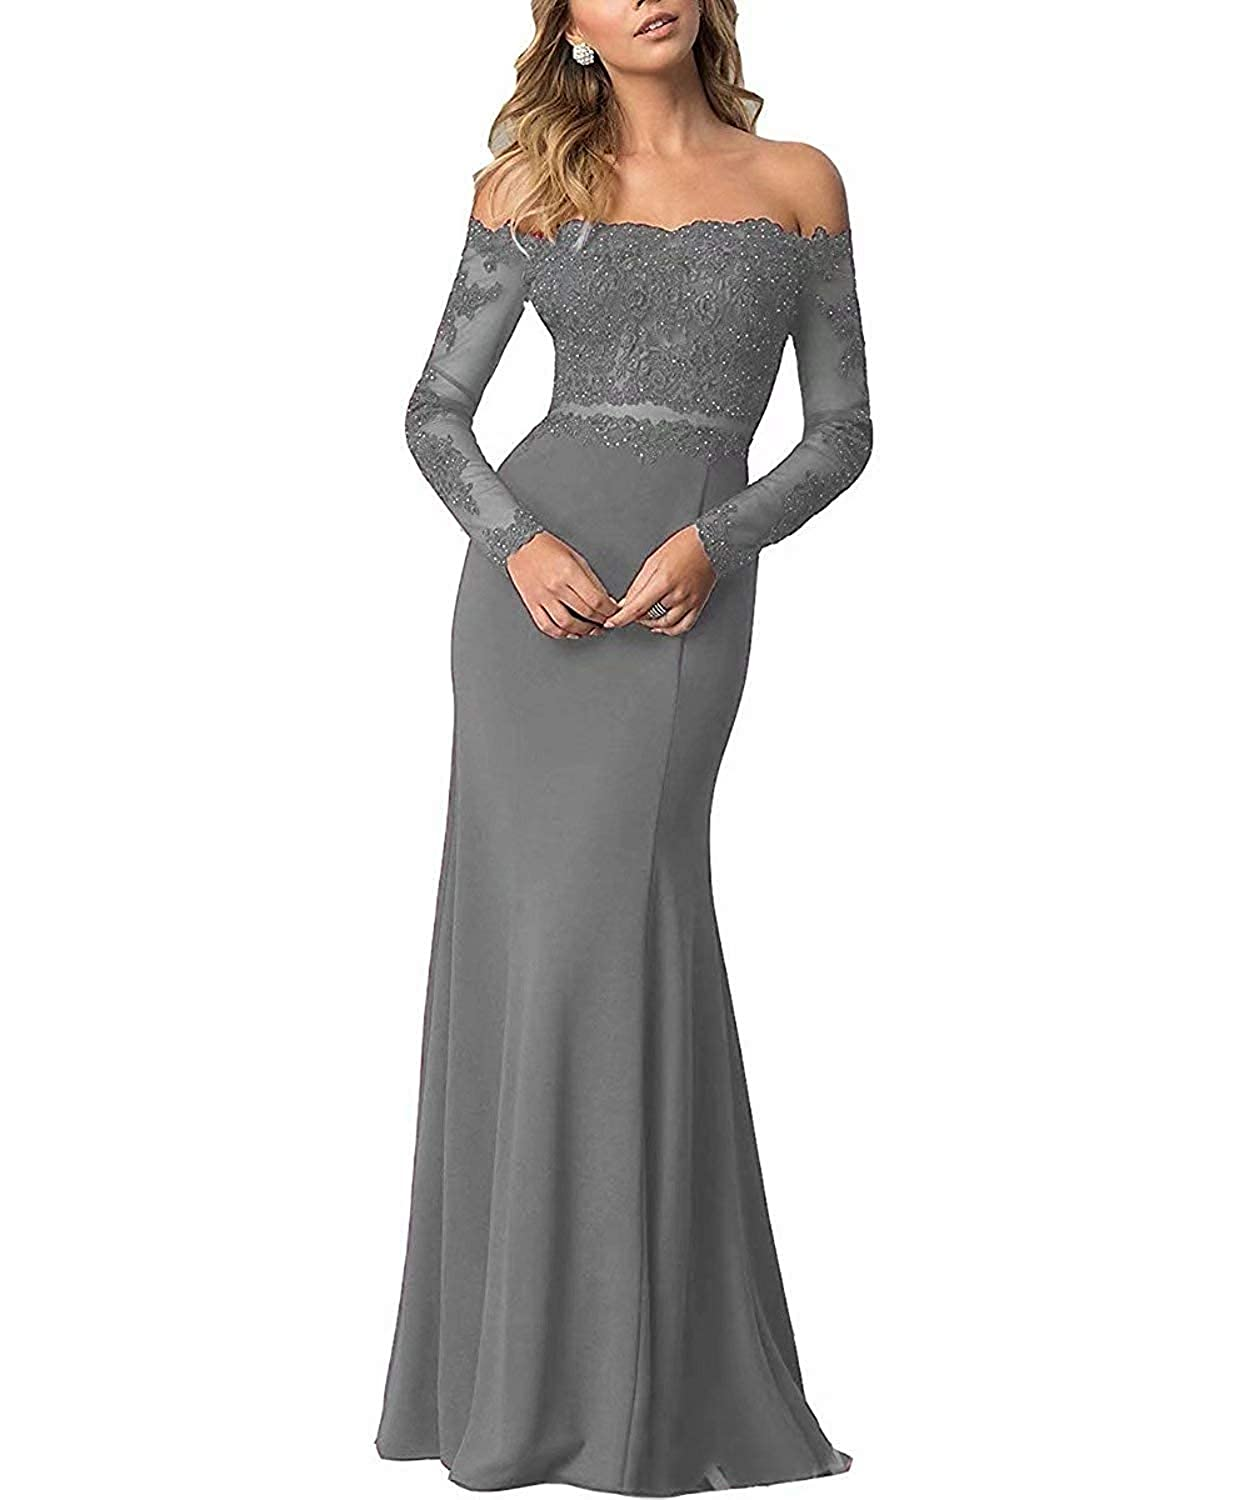 Steel Grey ModeC Prom Dresses Long Evening Gowns Lace Mermaid Prom Dress Off The Shoulder Evening Dresses